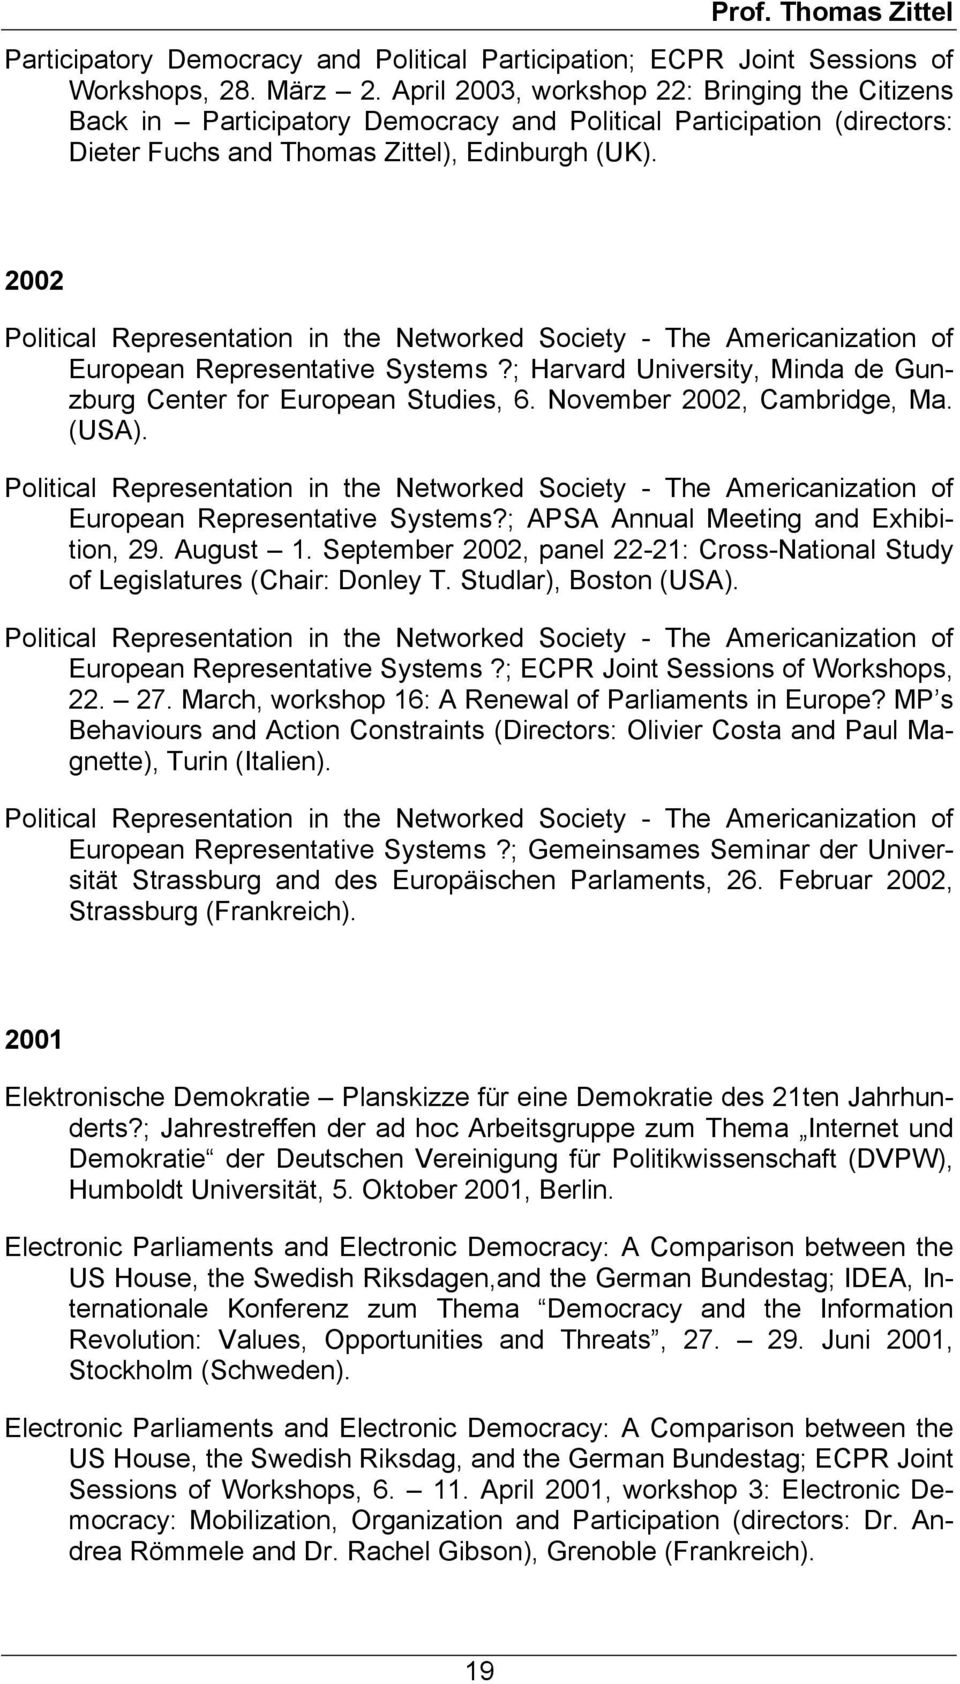 2002 Political Representation in the Networked Society - The Americanization of European Representative Systems?; Harvard University, Minda de Gunzburg Center for European Studies, 6.